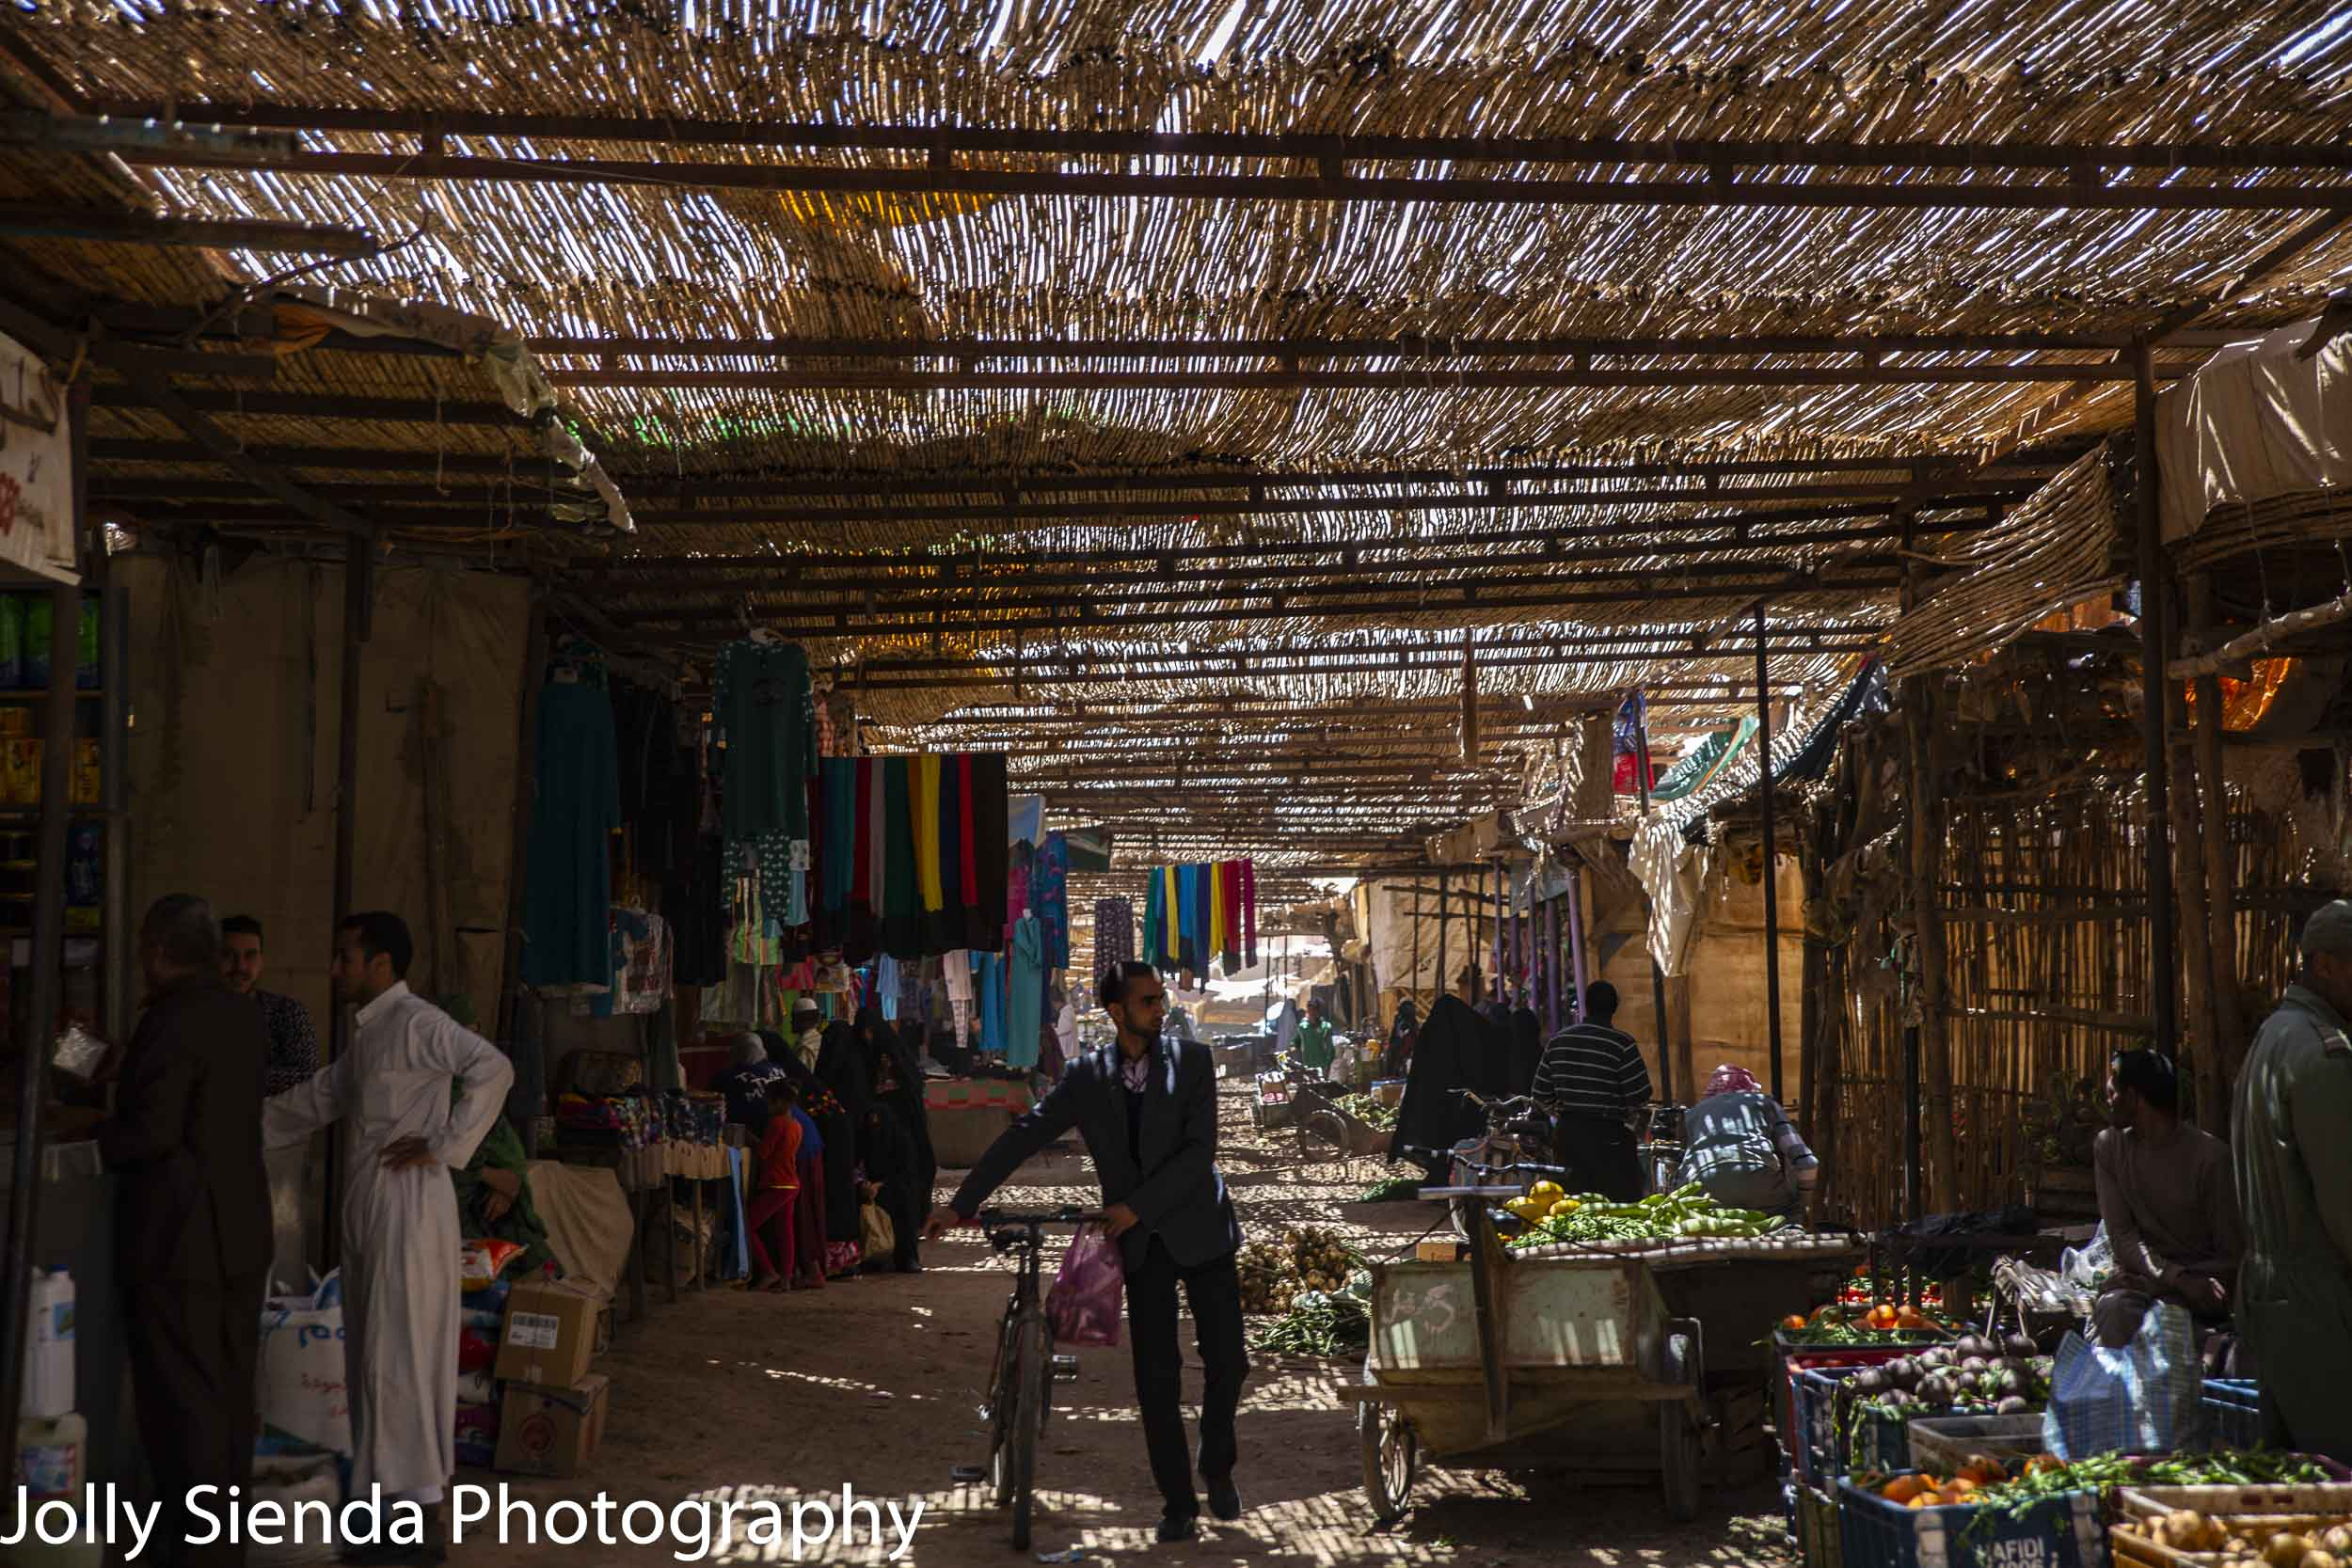 Market day at the souk